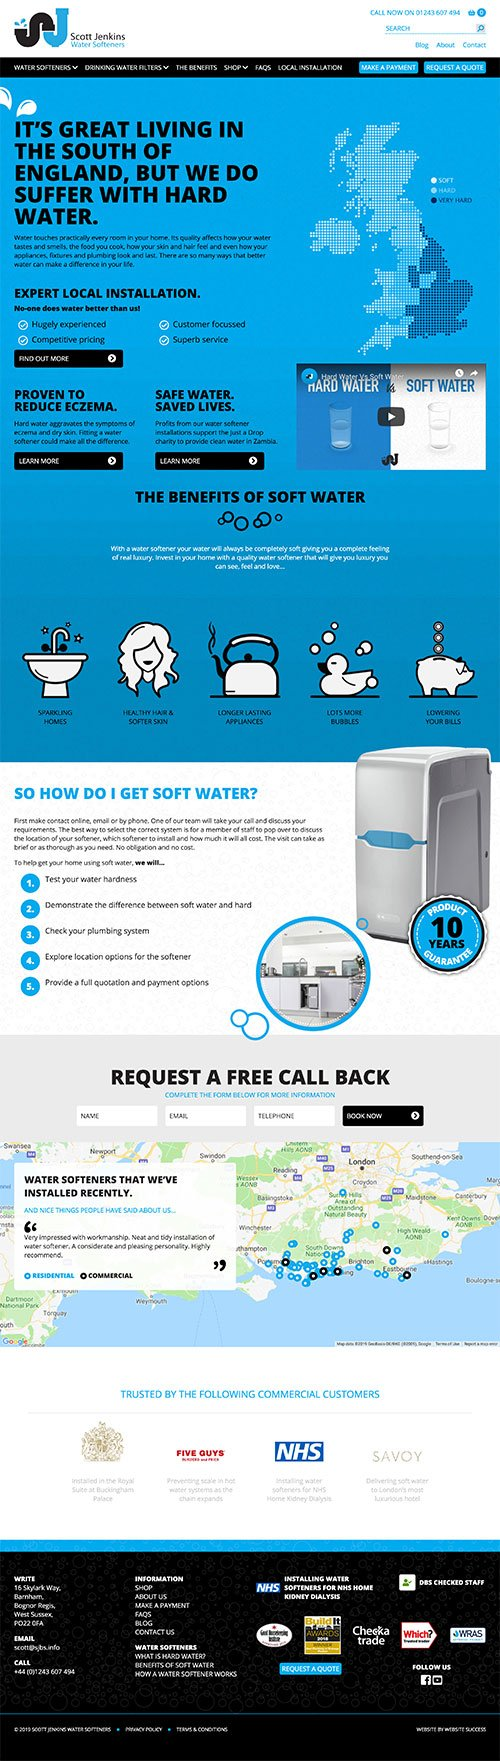 Scott Jenkins Water Softeners Full Website Design & Build